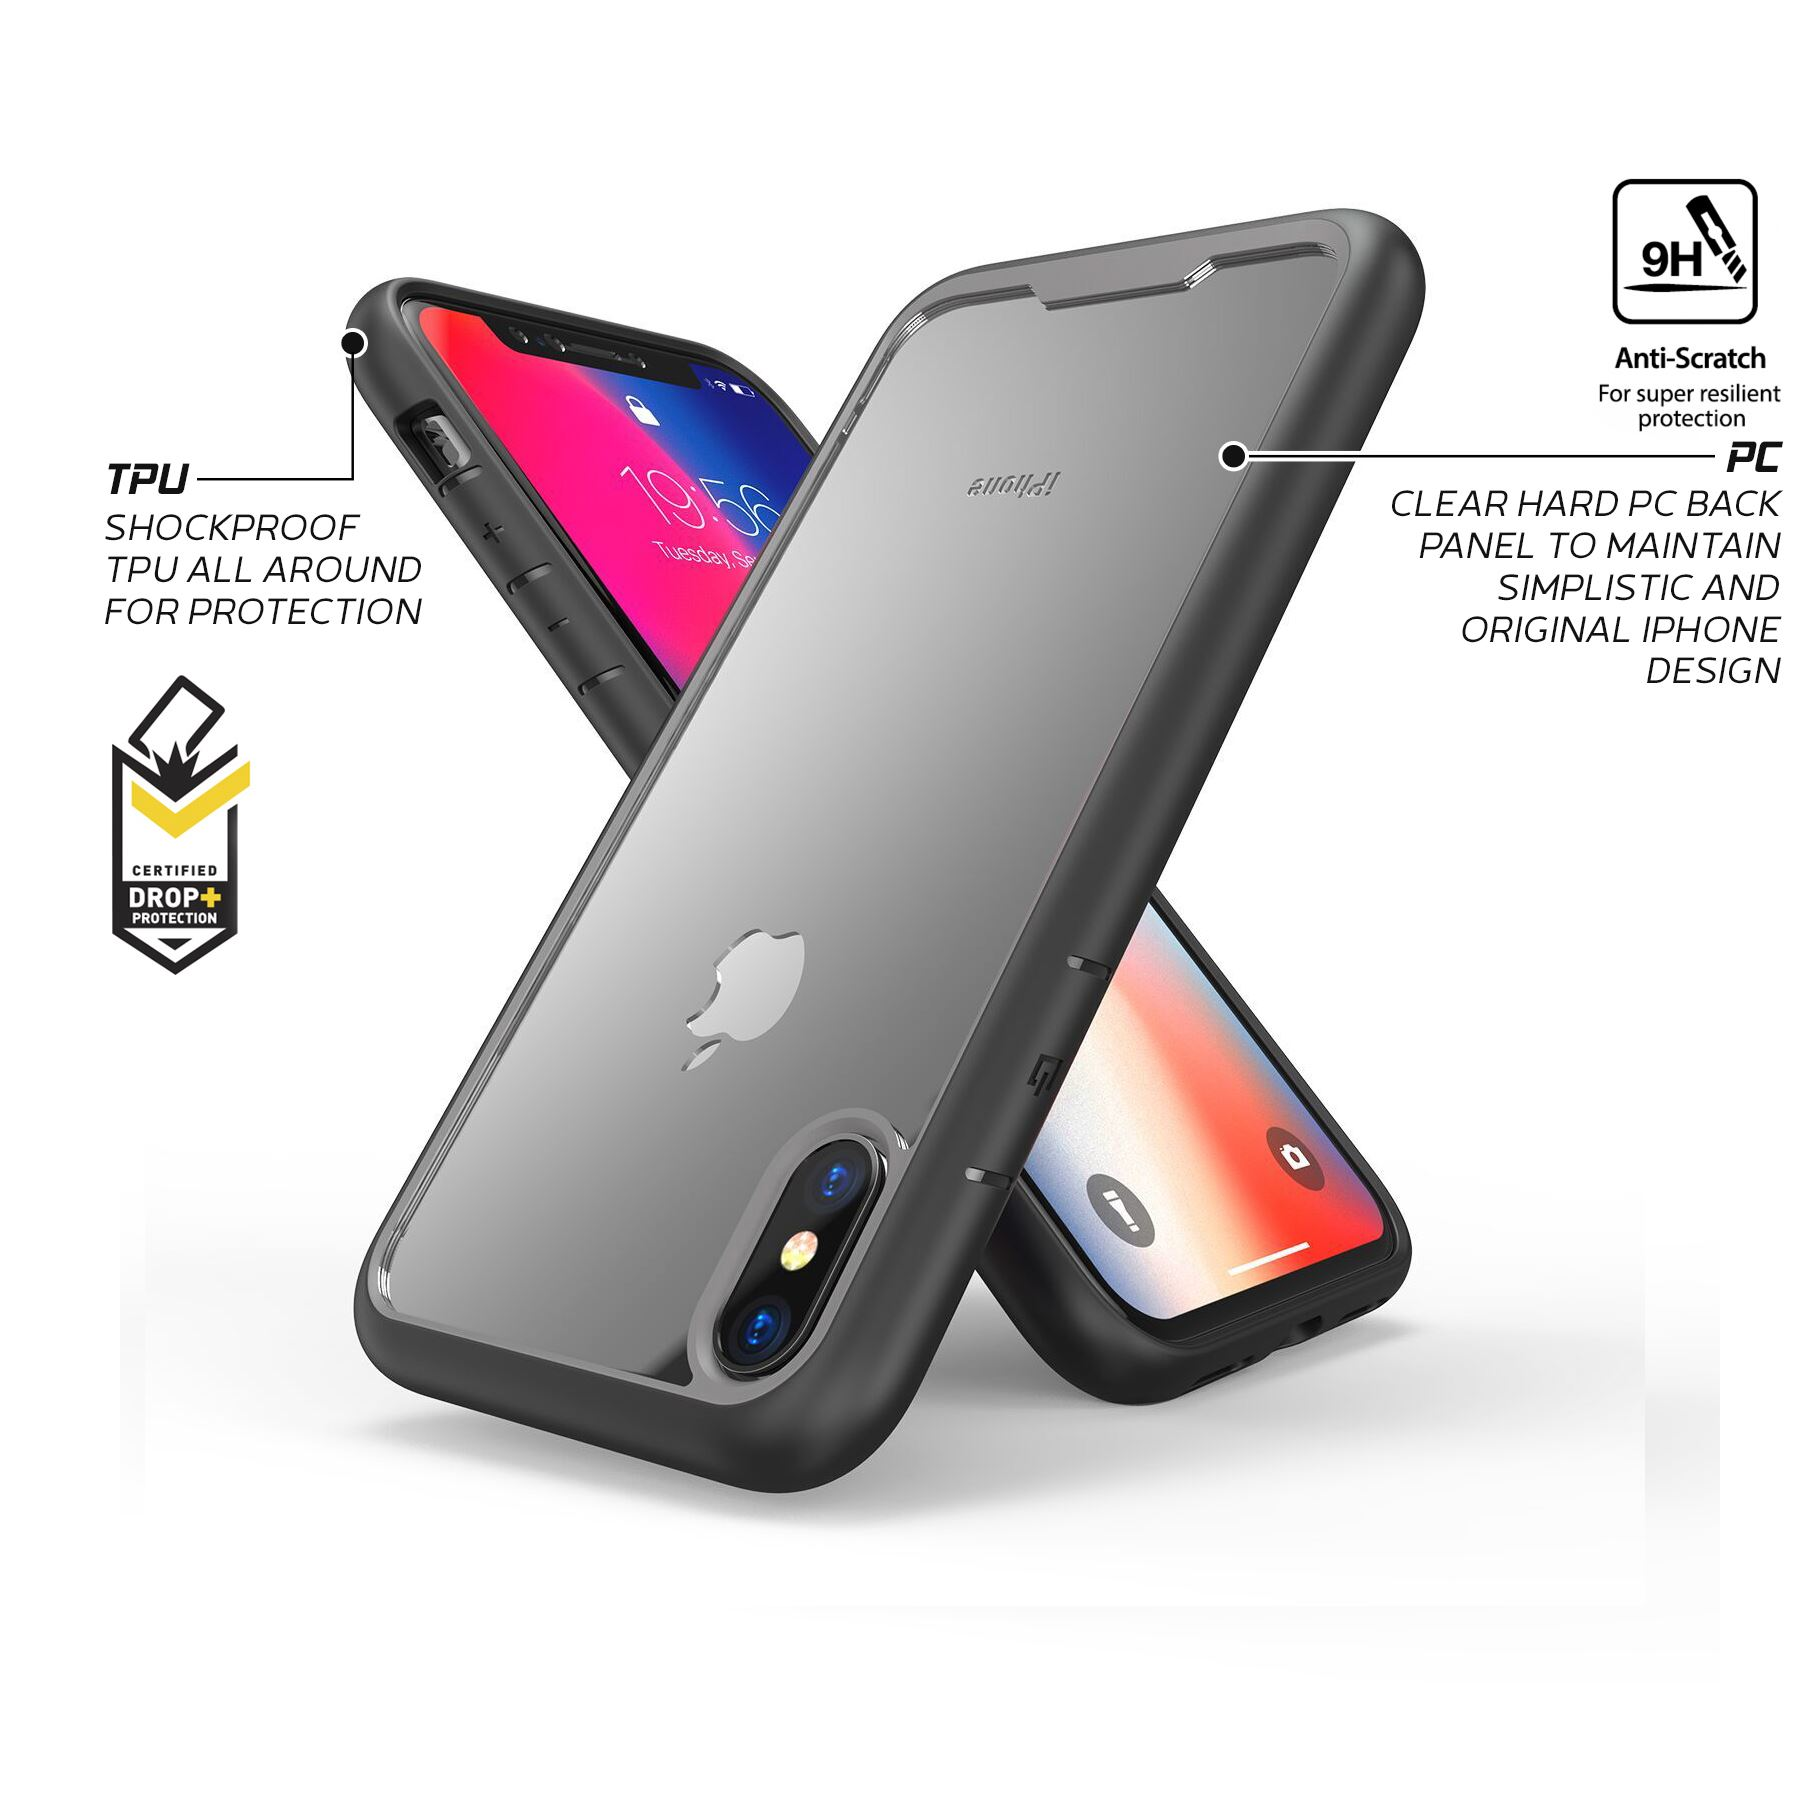 thumbnail 41 - For Apple iPhone XR Xs Max X 8 7 Plus 6 Se 2020 Case Cover Clear Shockproof Thin